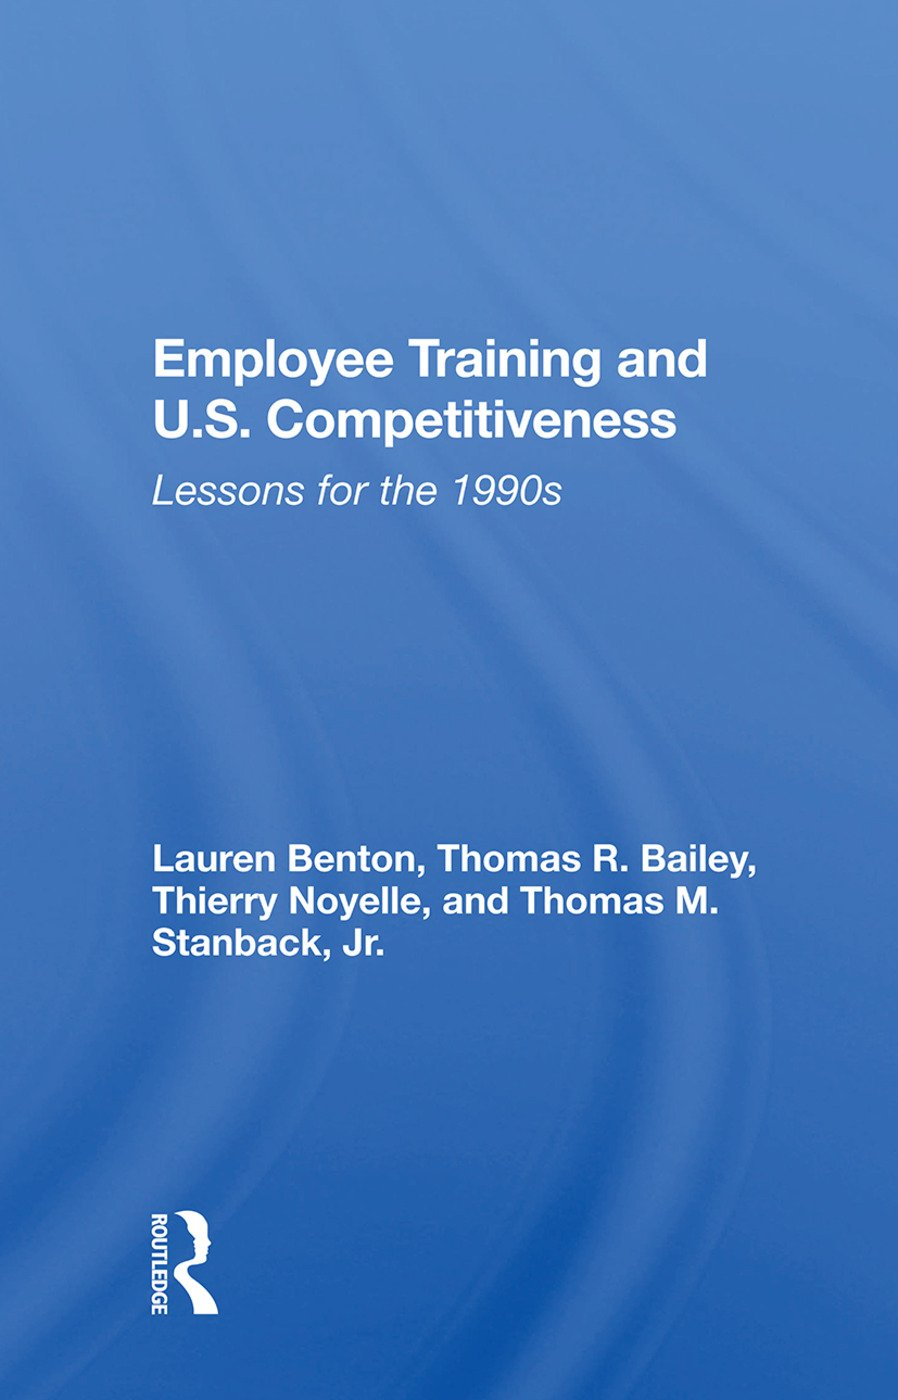 Employee Training And U.s. Competitiveness: Lessons For The 1990s book cover